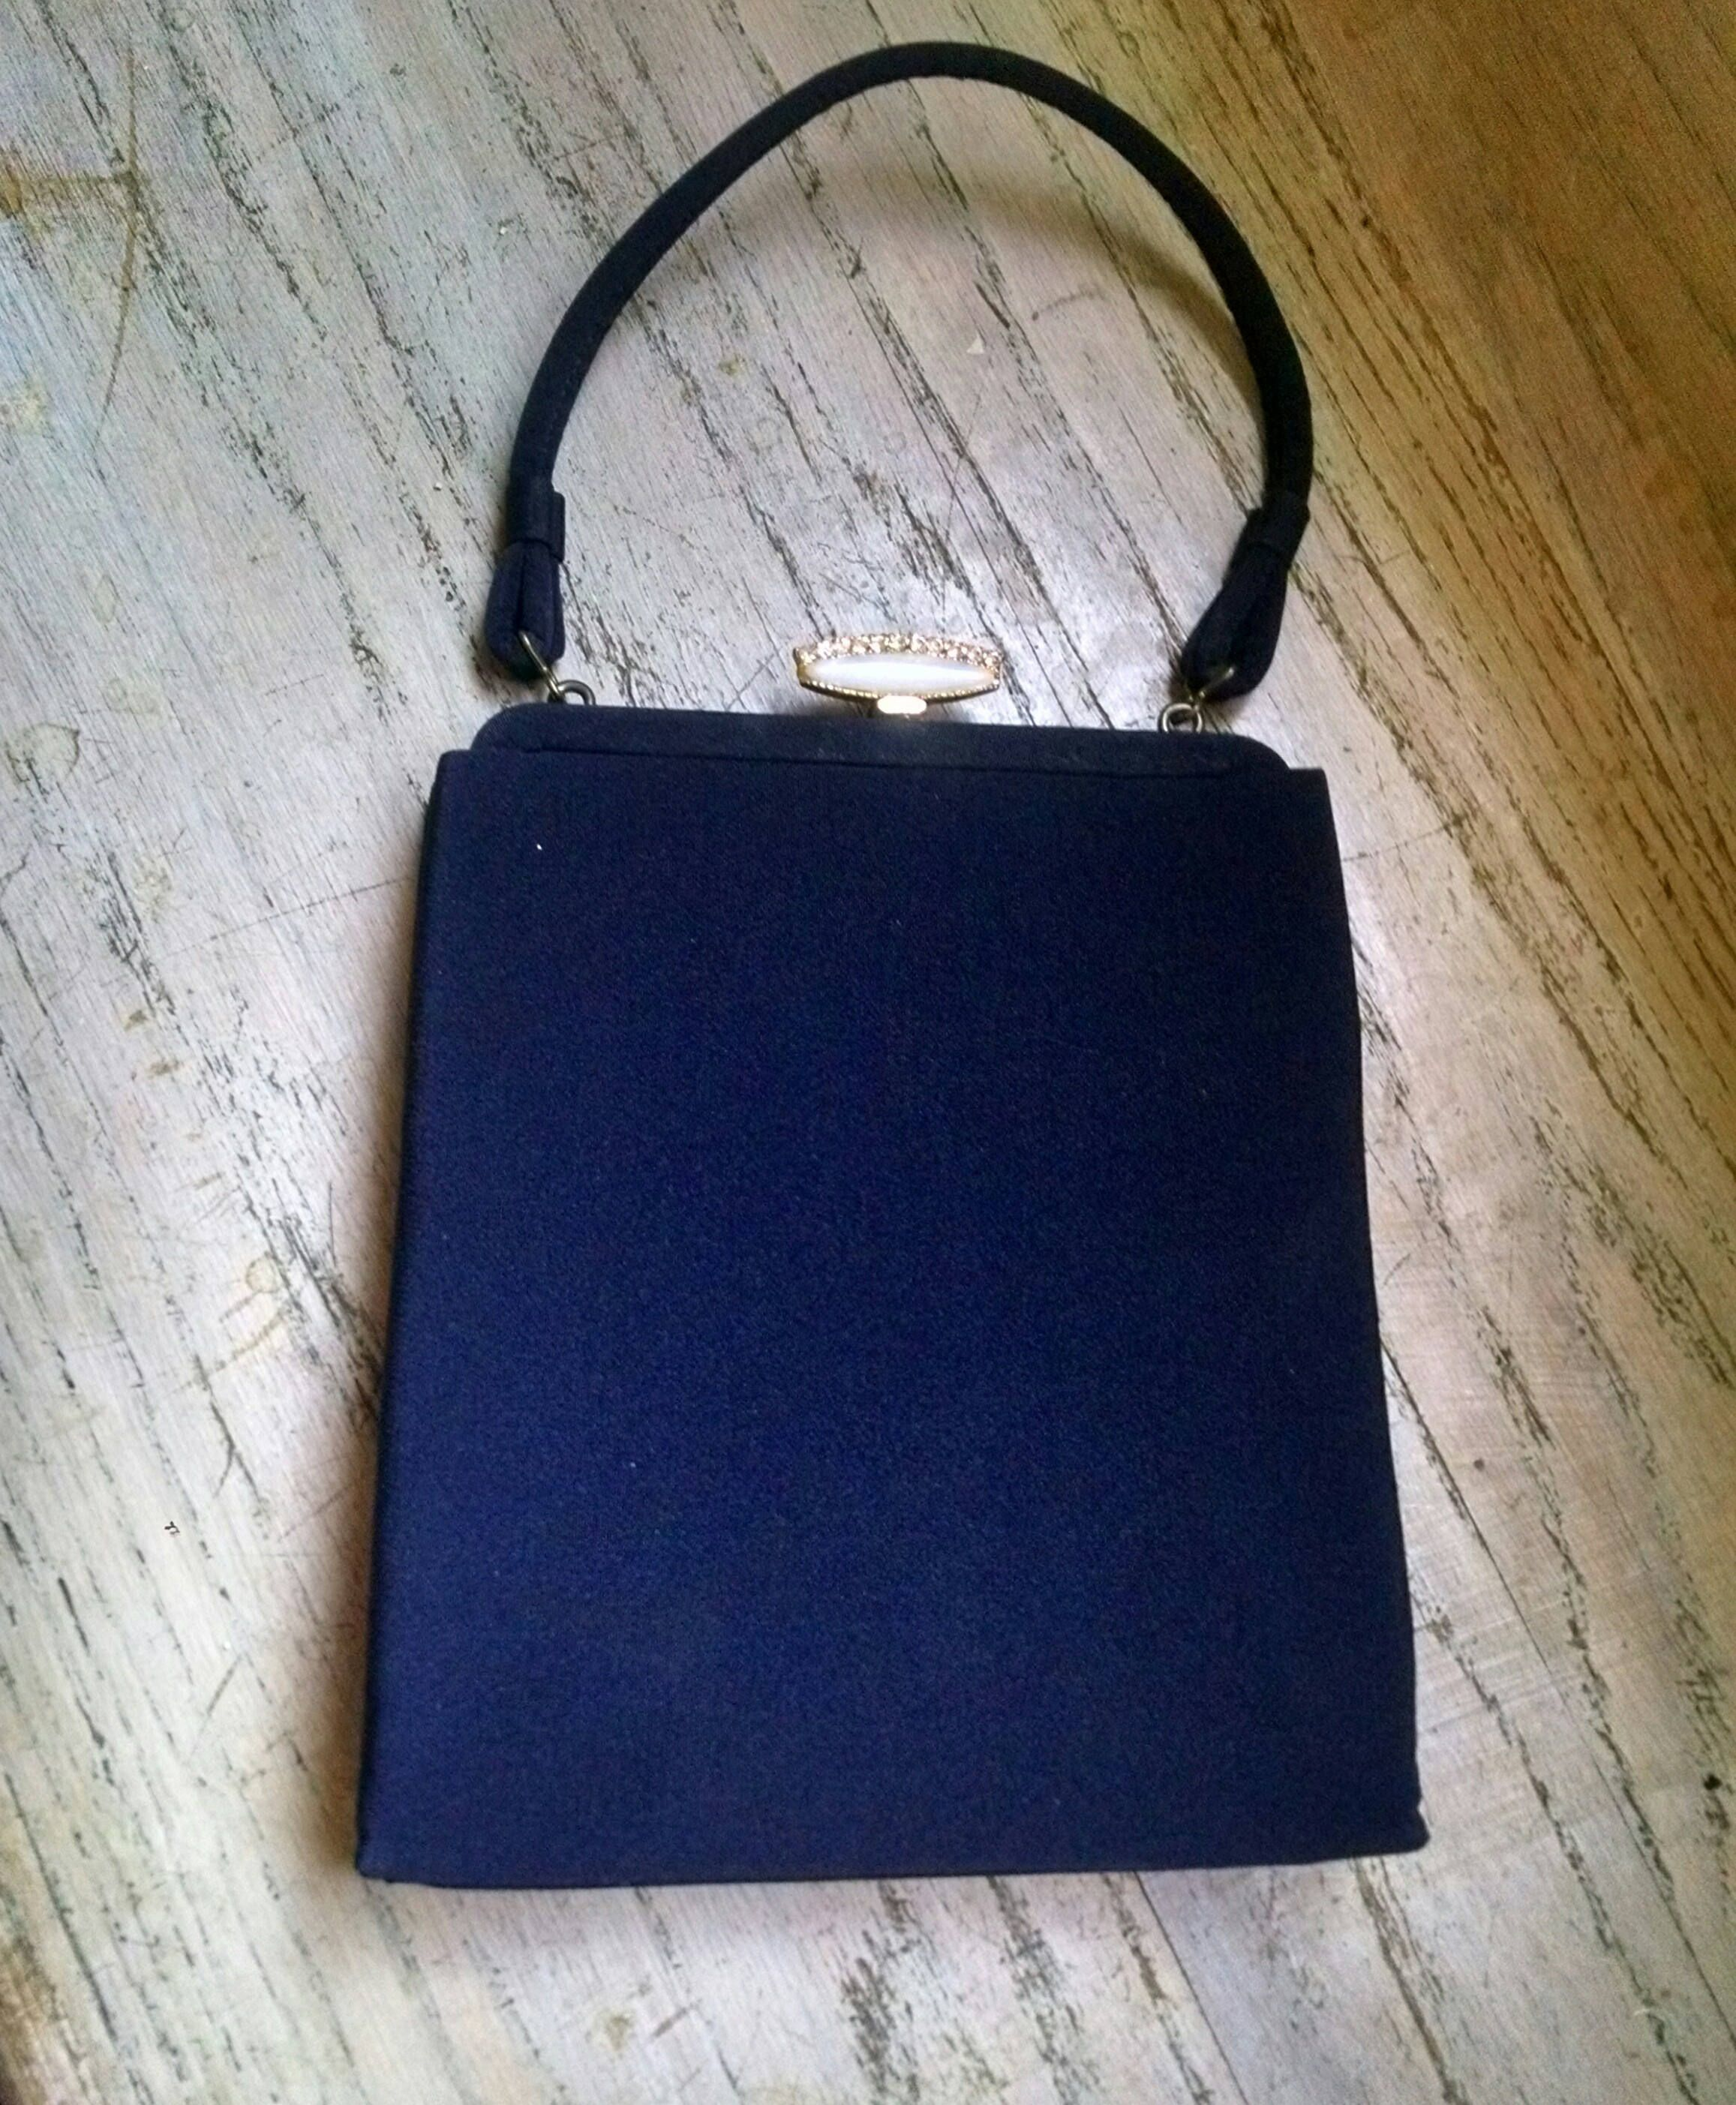 Navy Blue Purse Handbag Pearlized Closure Vintage Wedding Accessories Mid Century Waldorf 1950s Gift Guide Women